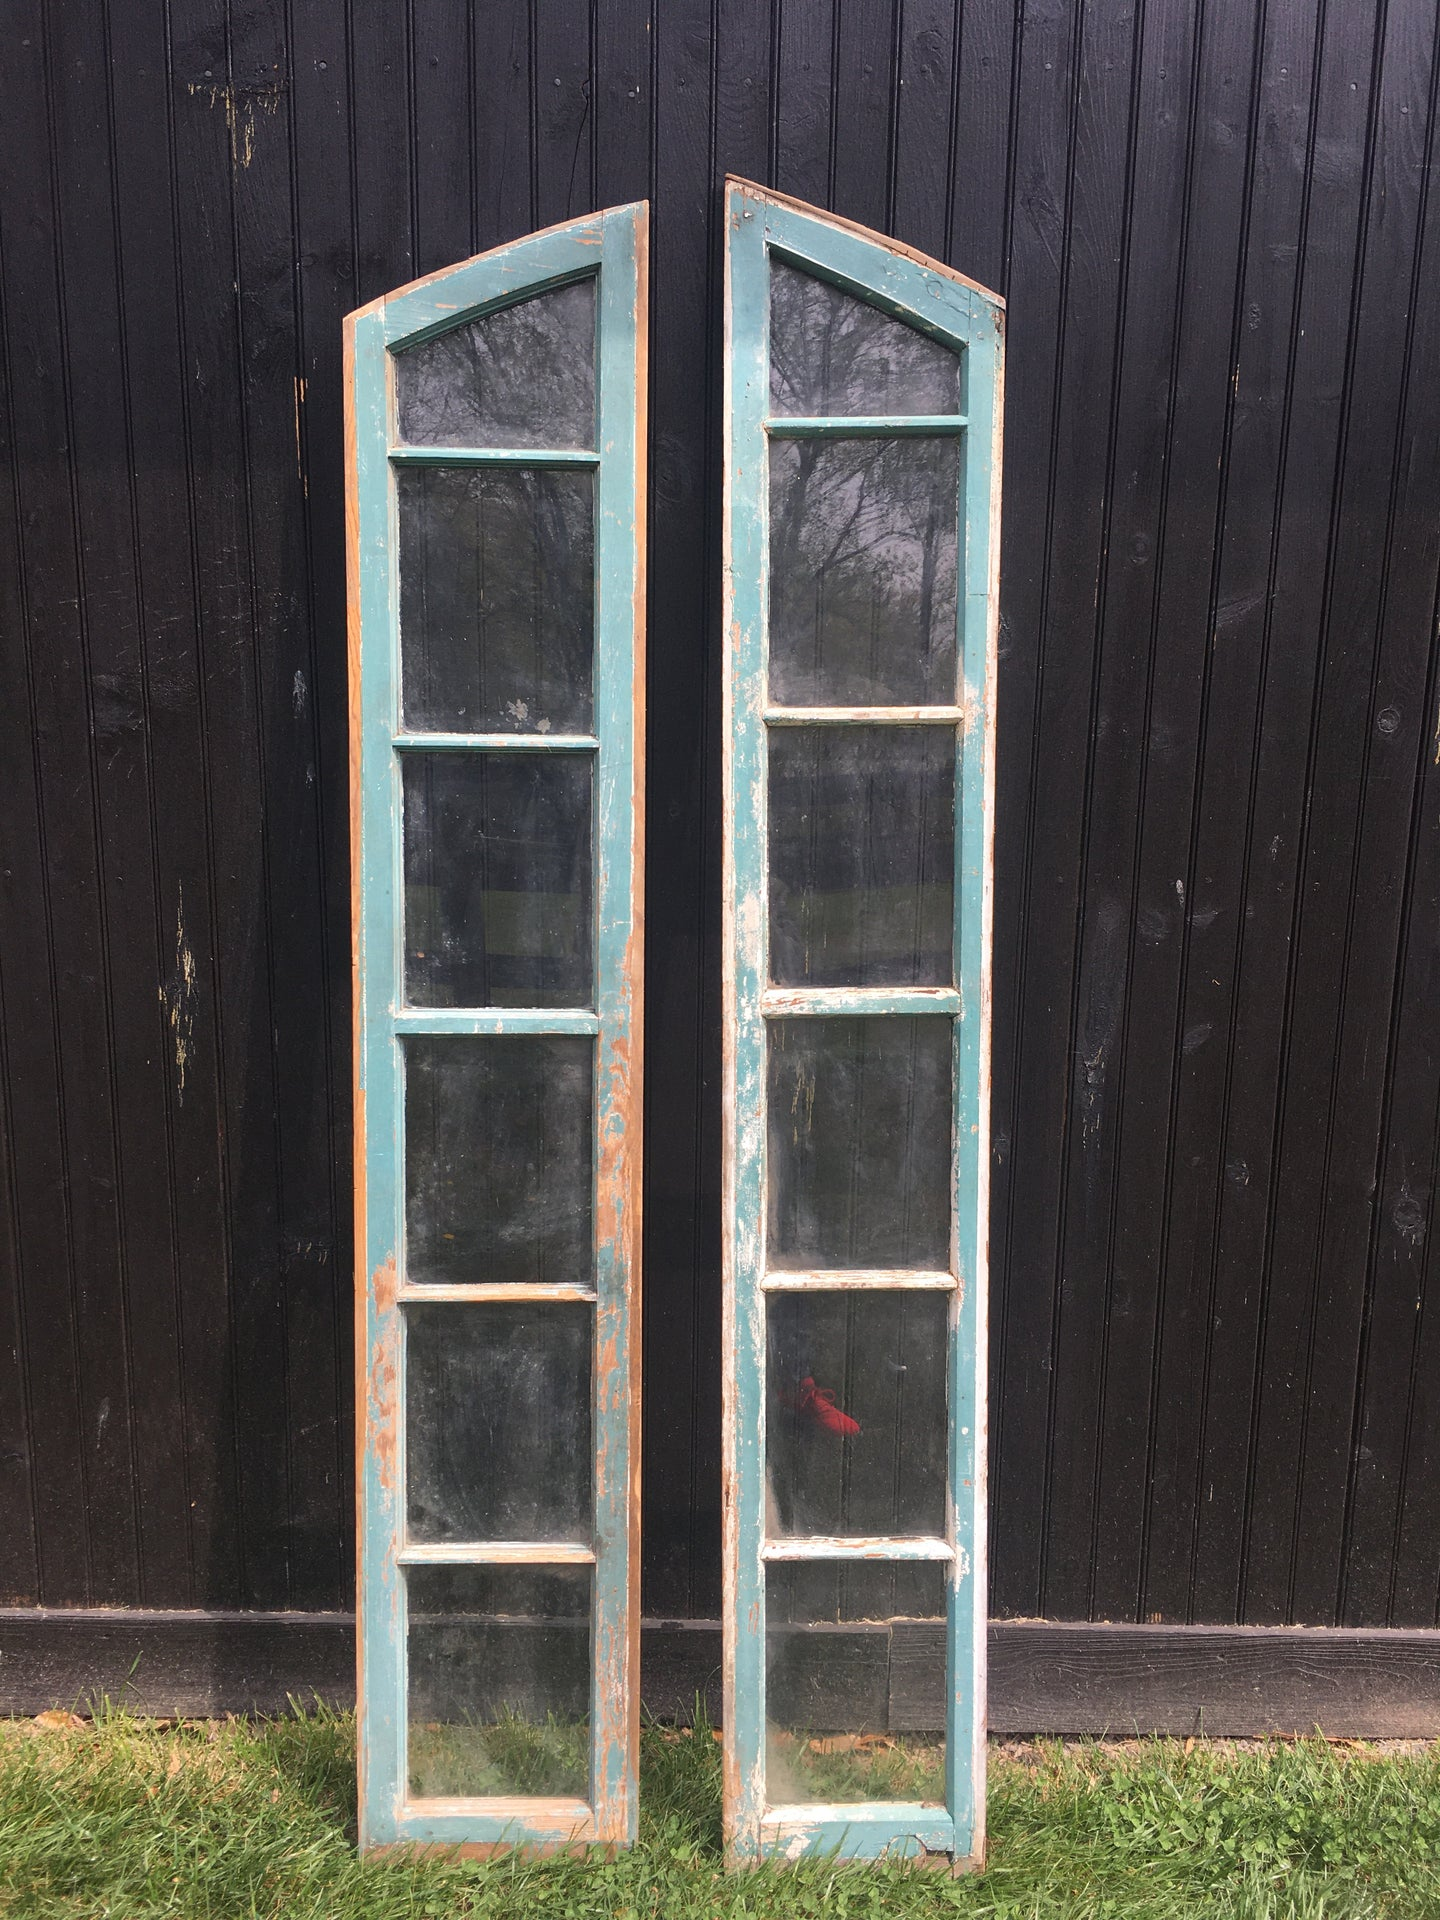 Pair of Vintage Blue/Green Arched Windows